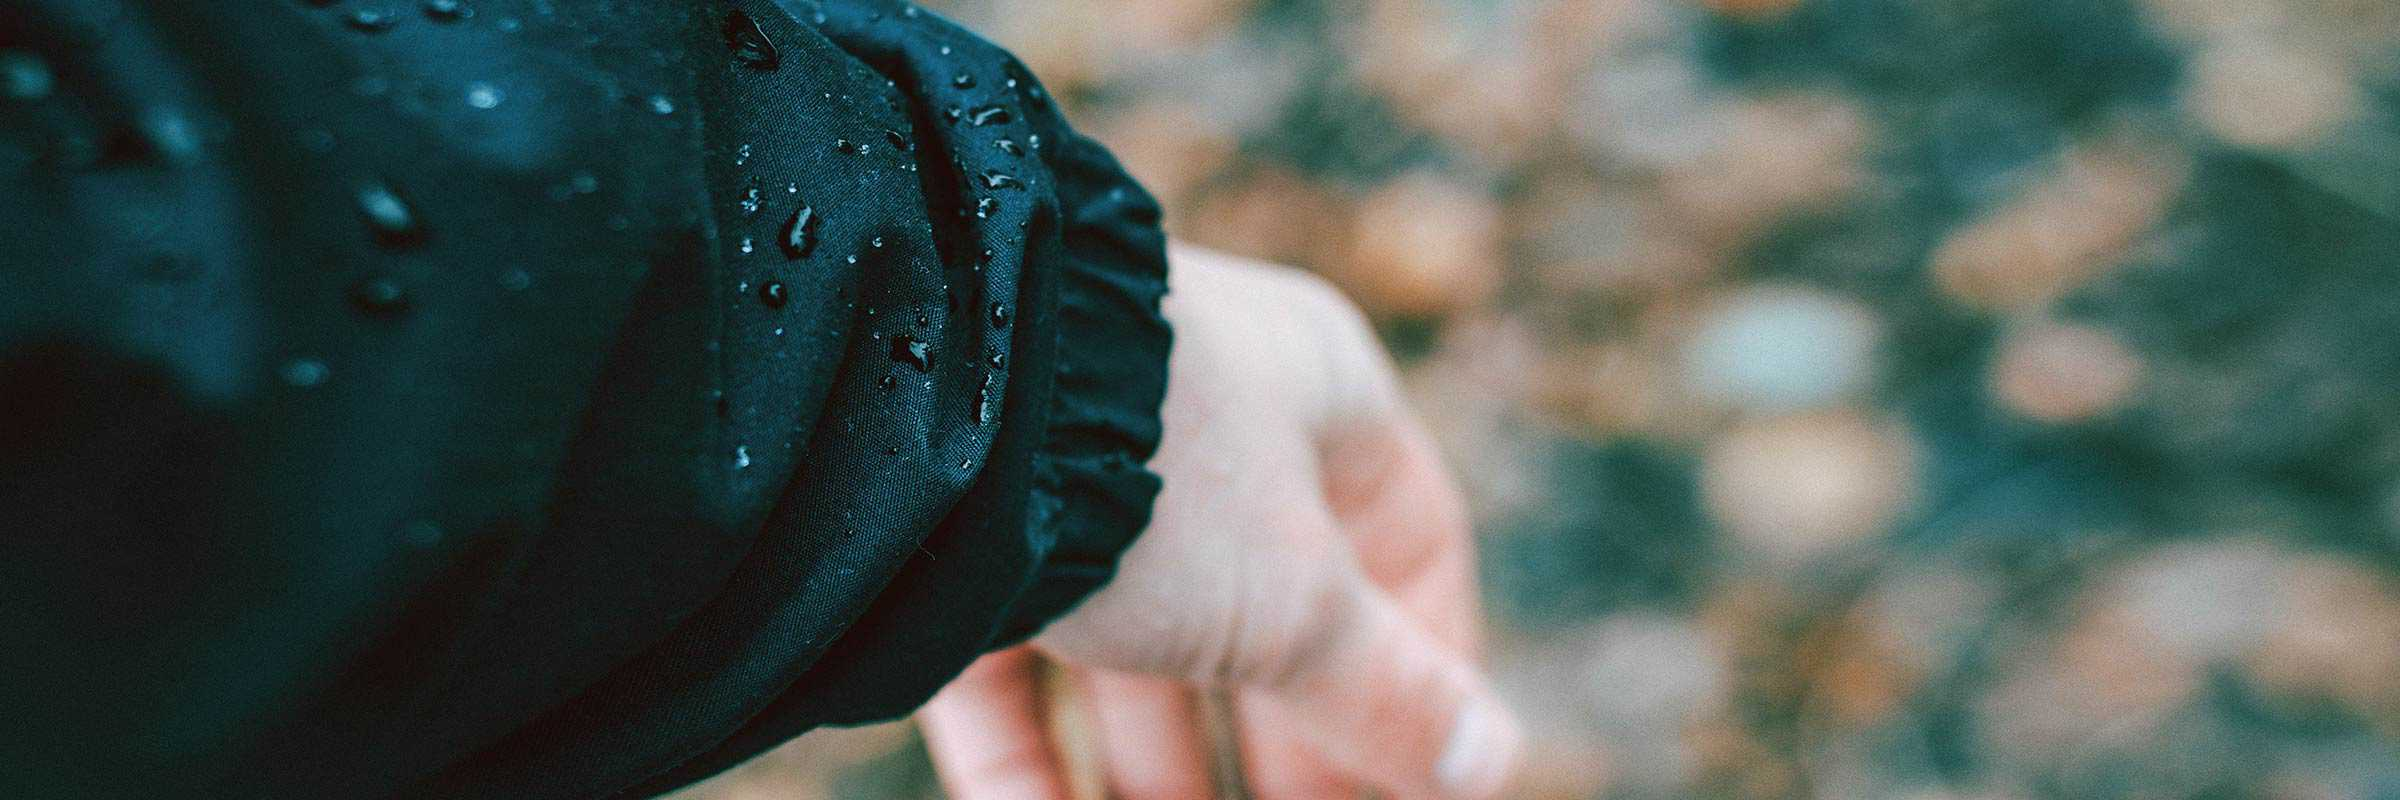 How to Clean Your Rain Jacket